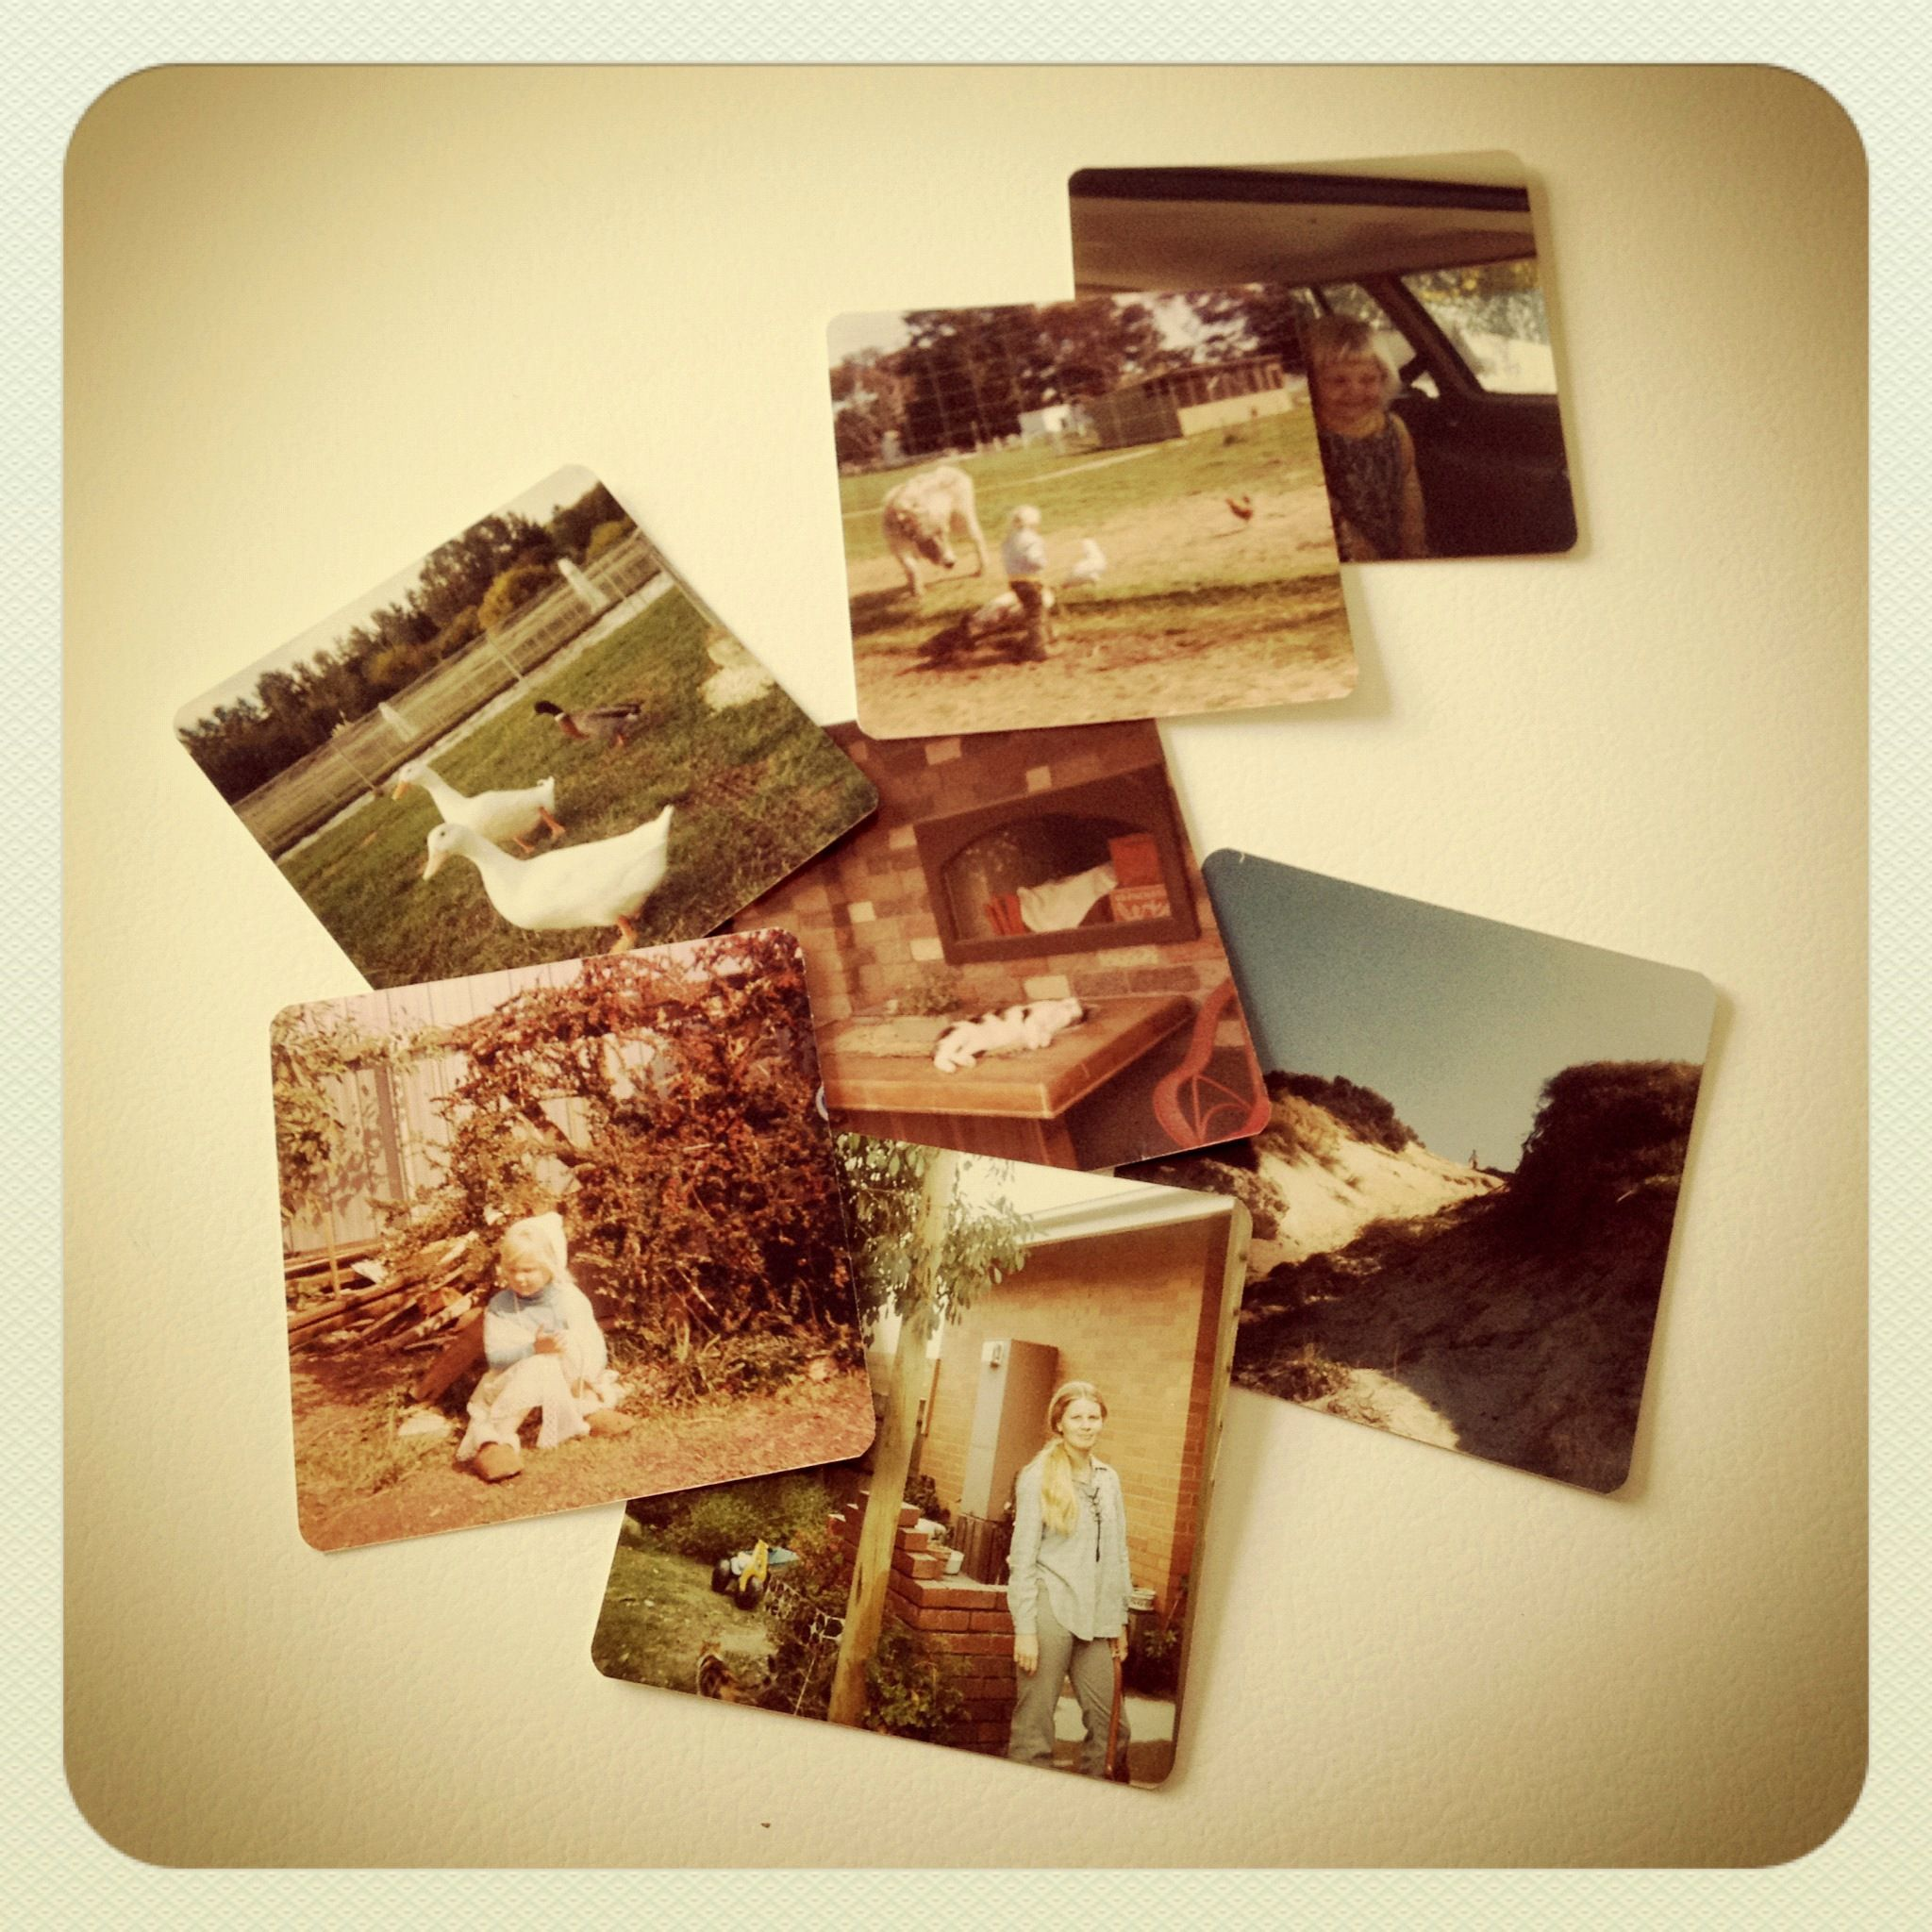 8 Websites to Print Instagram Photos on Things